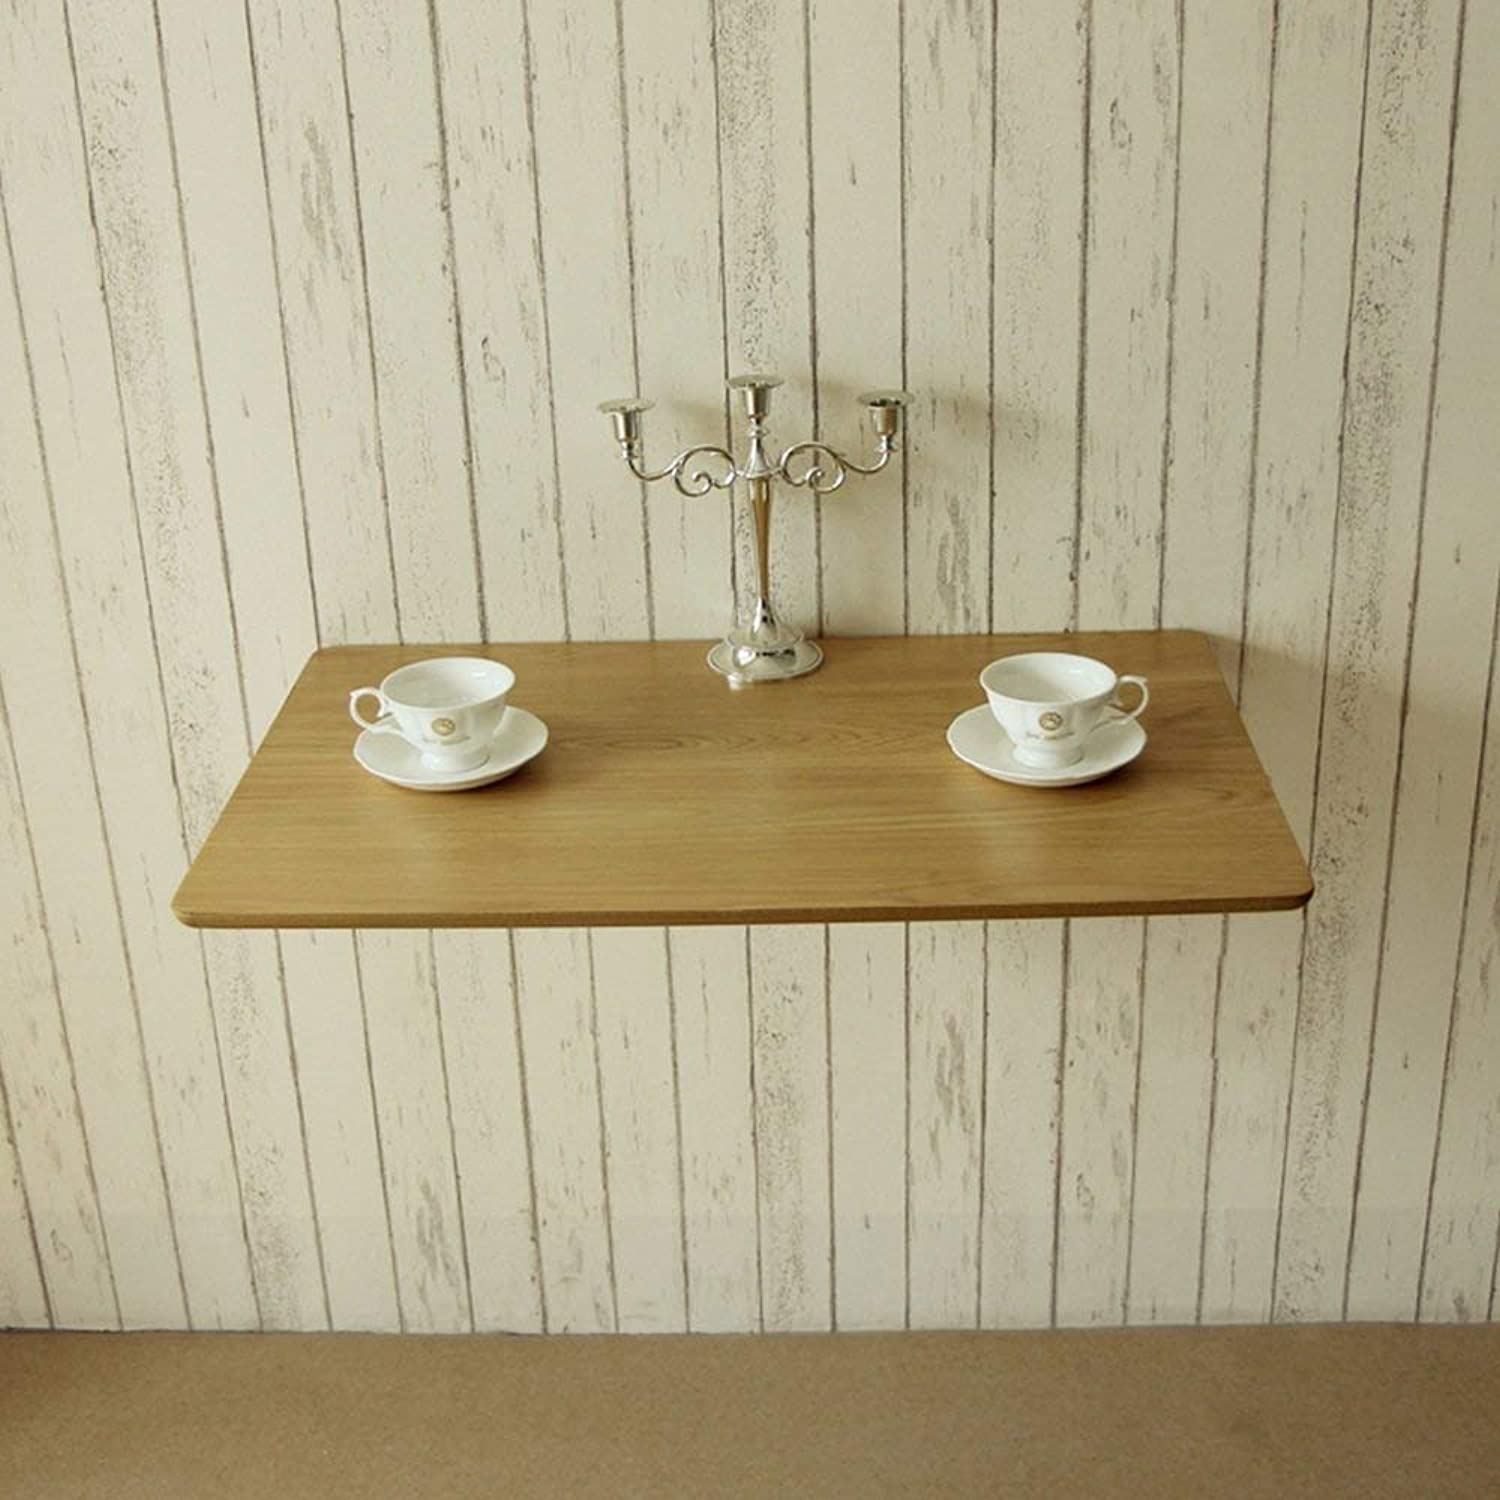 SED Multifunction Small Table Household Solid Wood Wall-Mounted Folding Dining Side Study Bedroom Simple Study Table